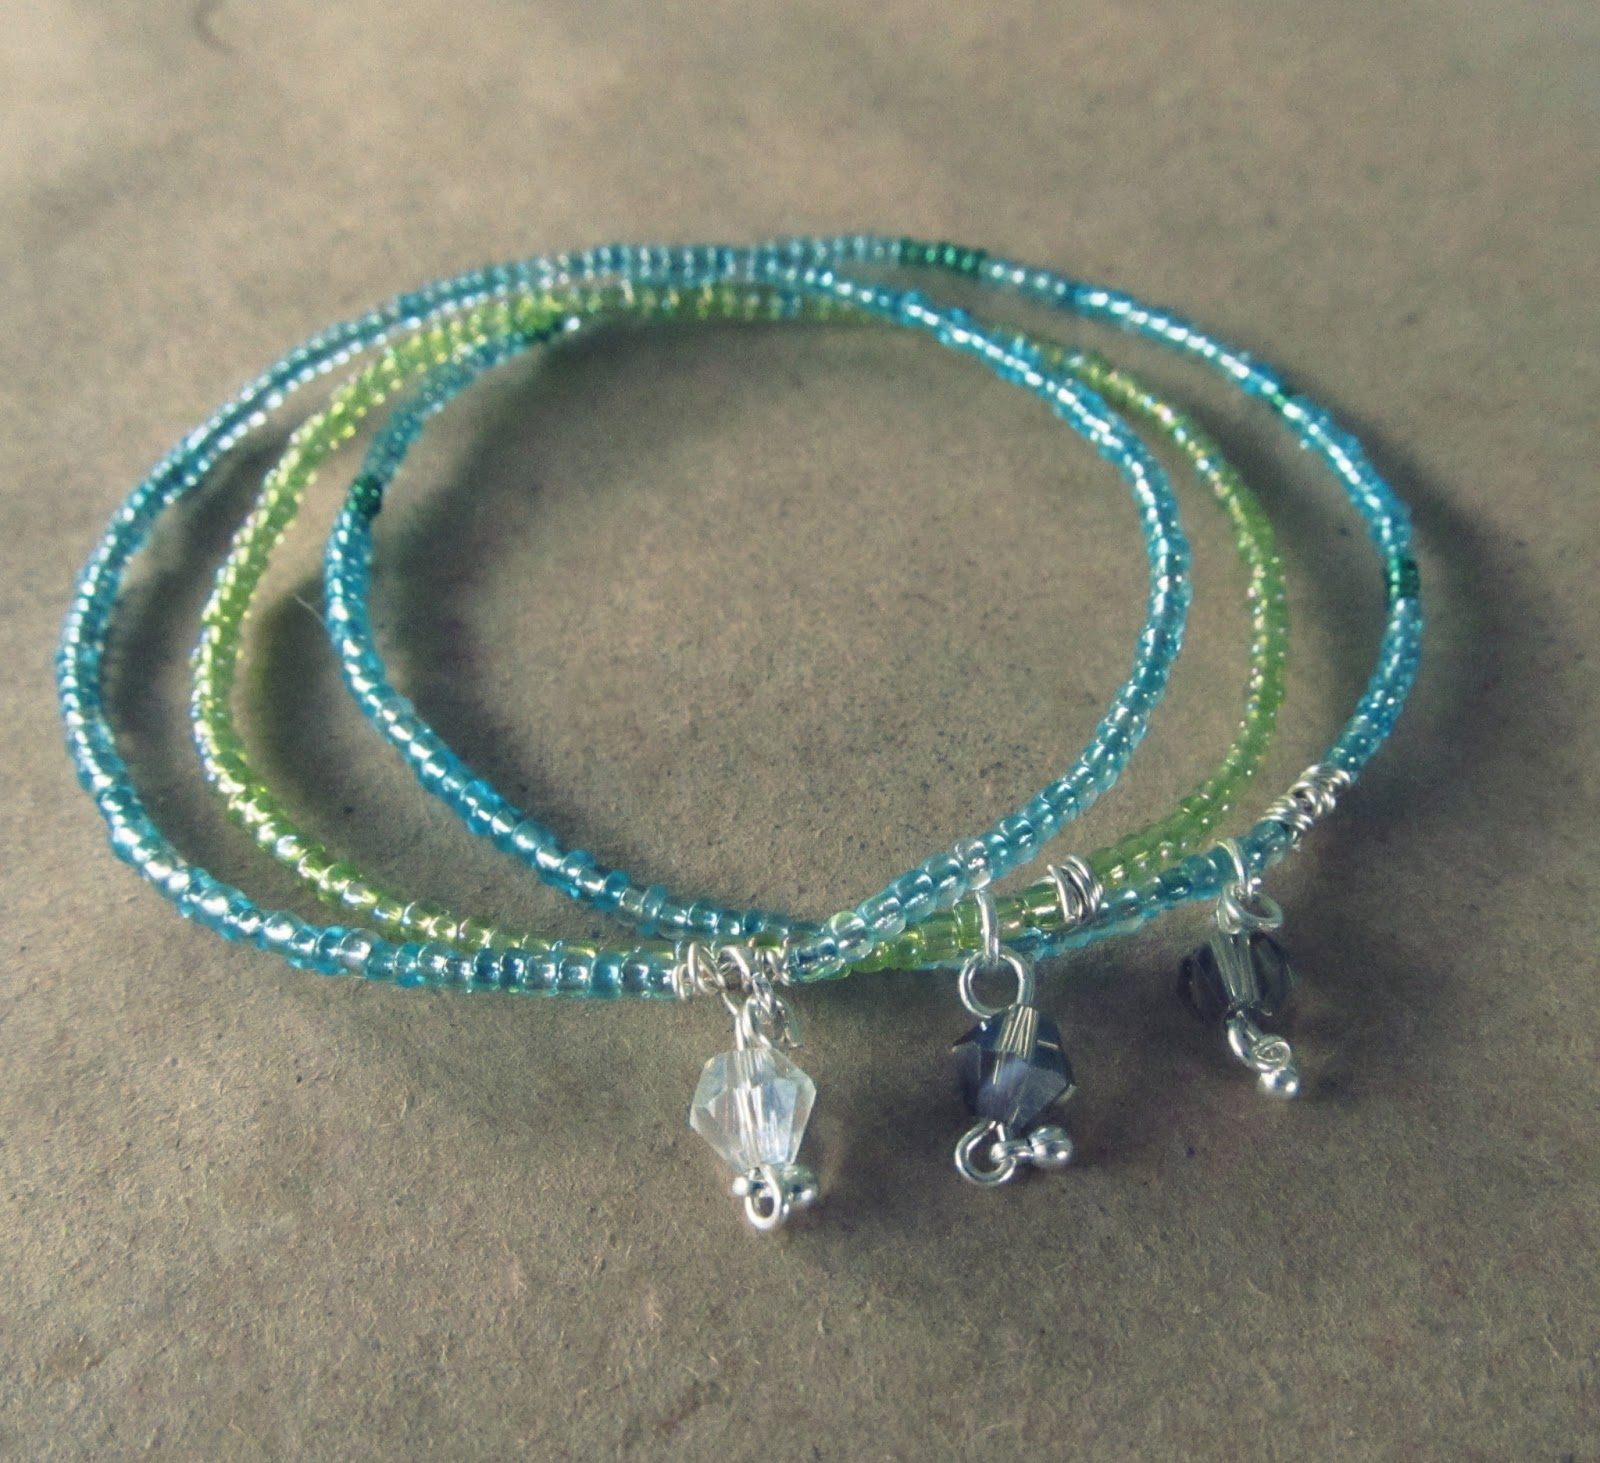 wobisobi seed bead bangle bracelet diy